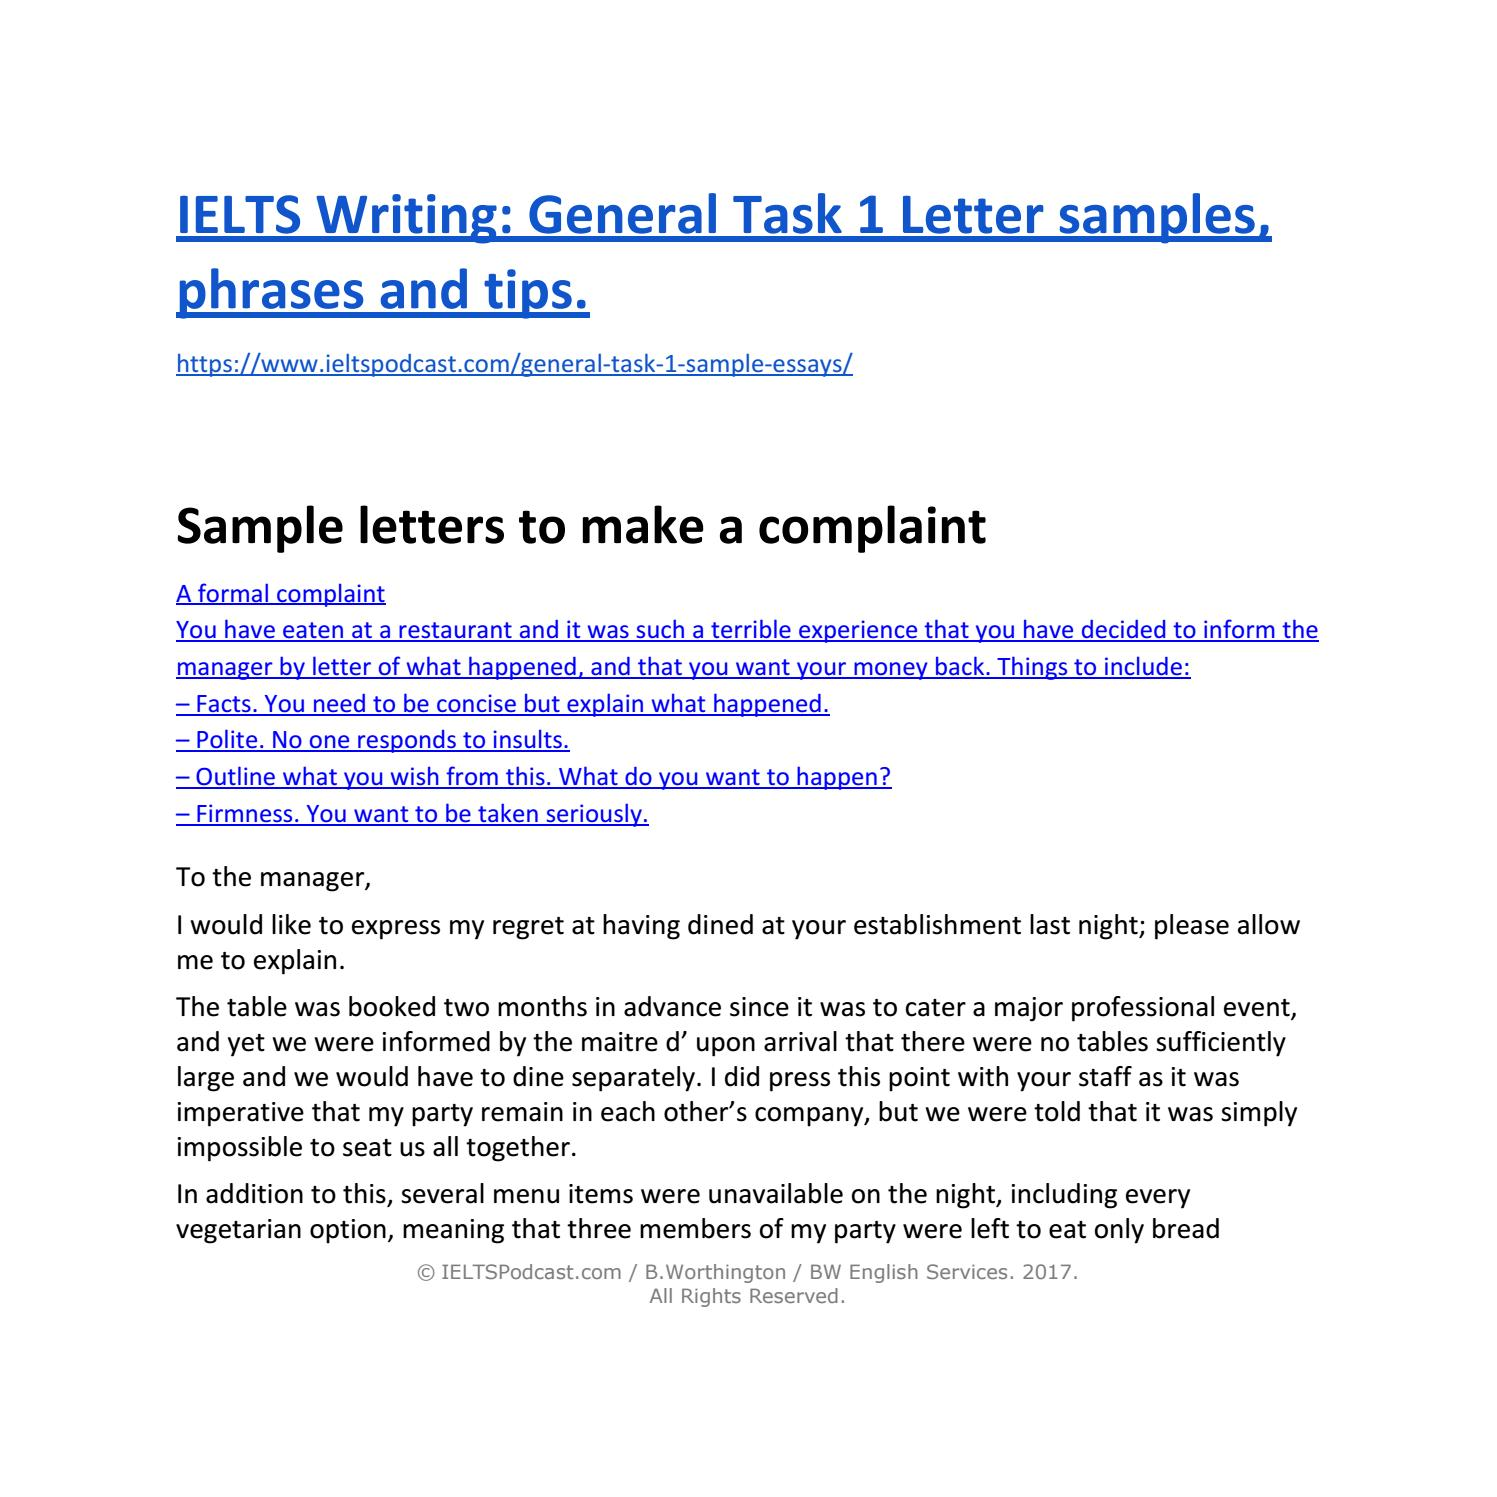 Ielts writing general task 1 sample letters and phrases by ielts ielts writing general task 1 sample letters and phrases by ielts general issuu spiritdancerdesigns Image collections